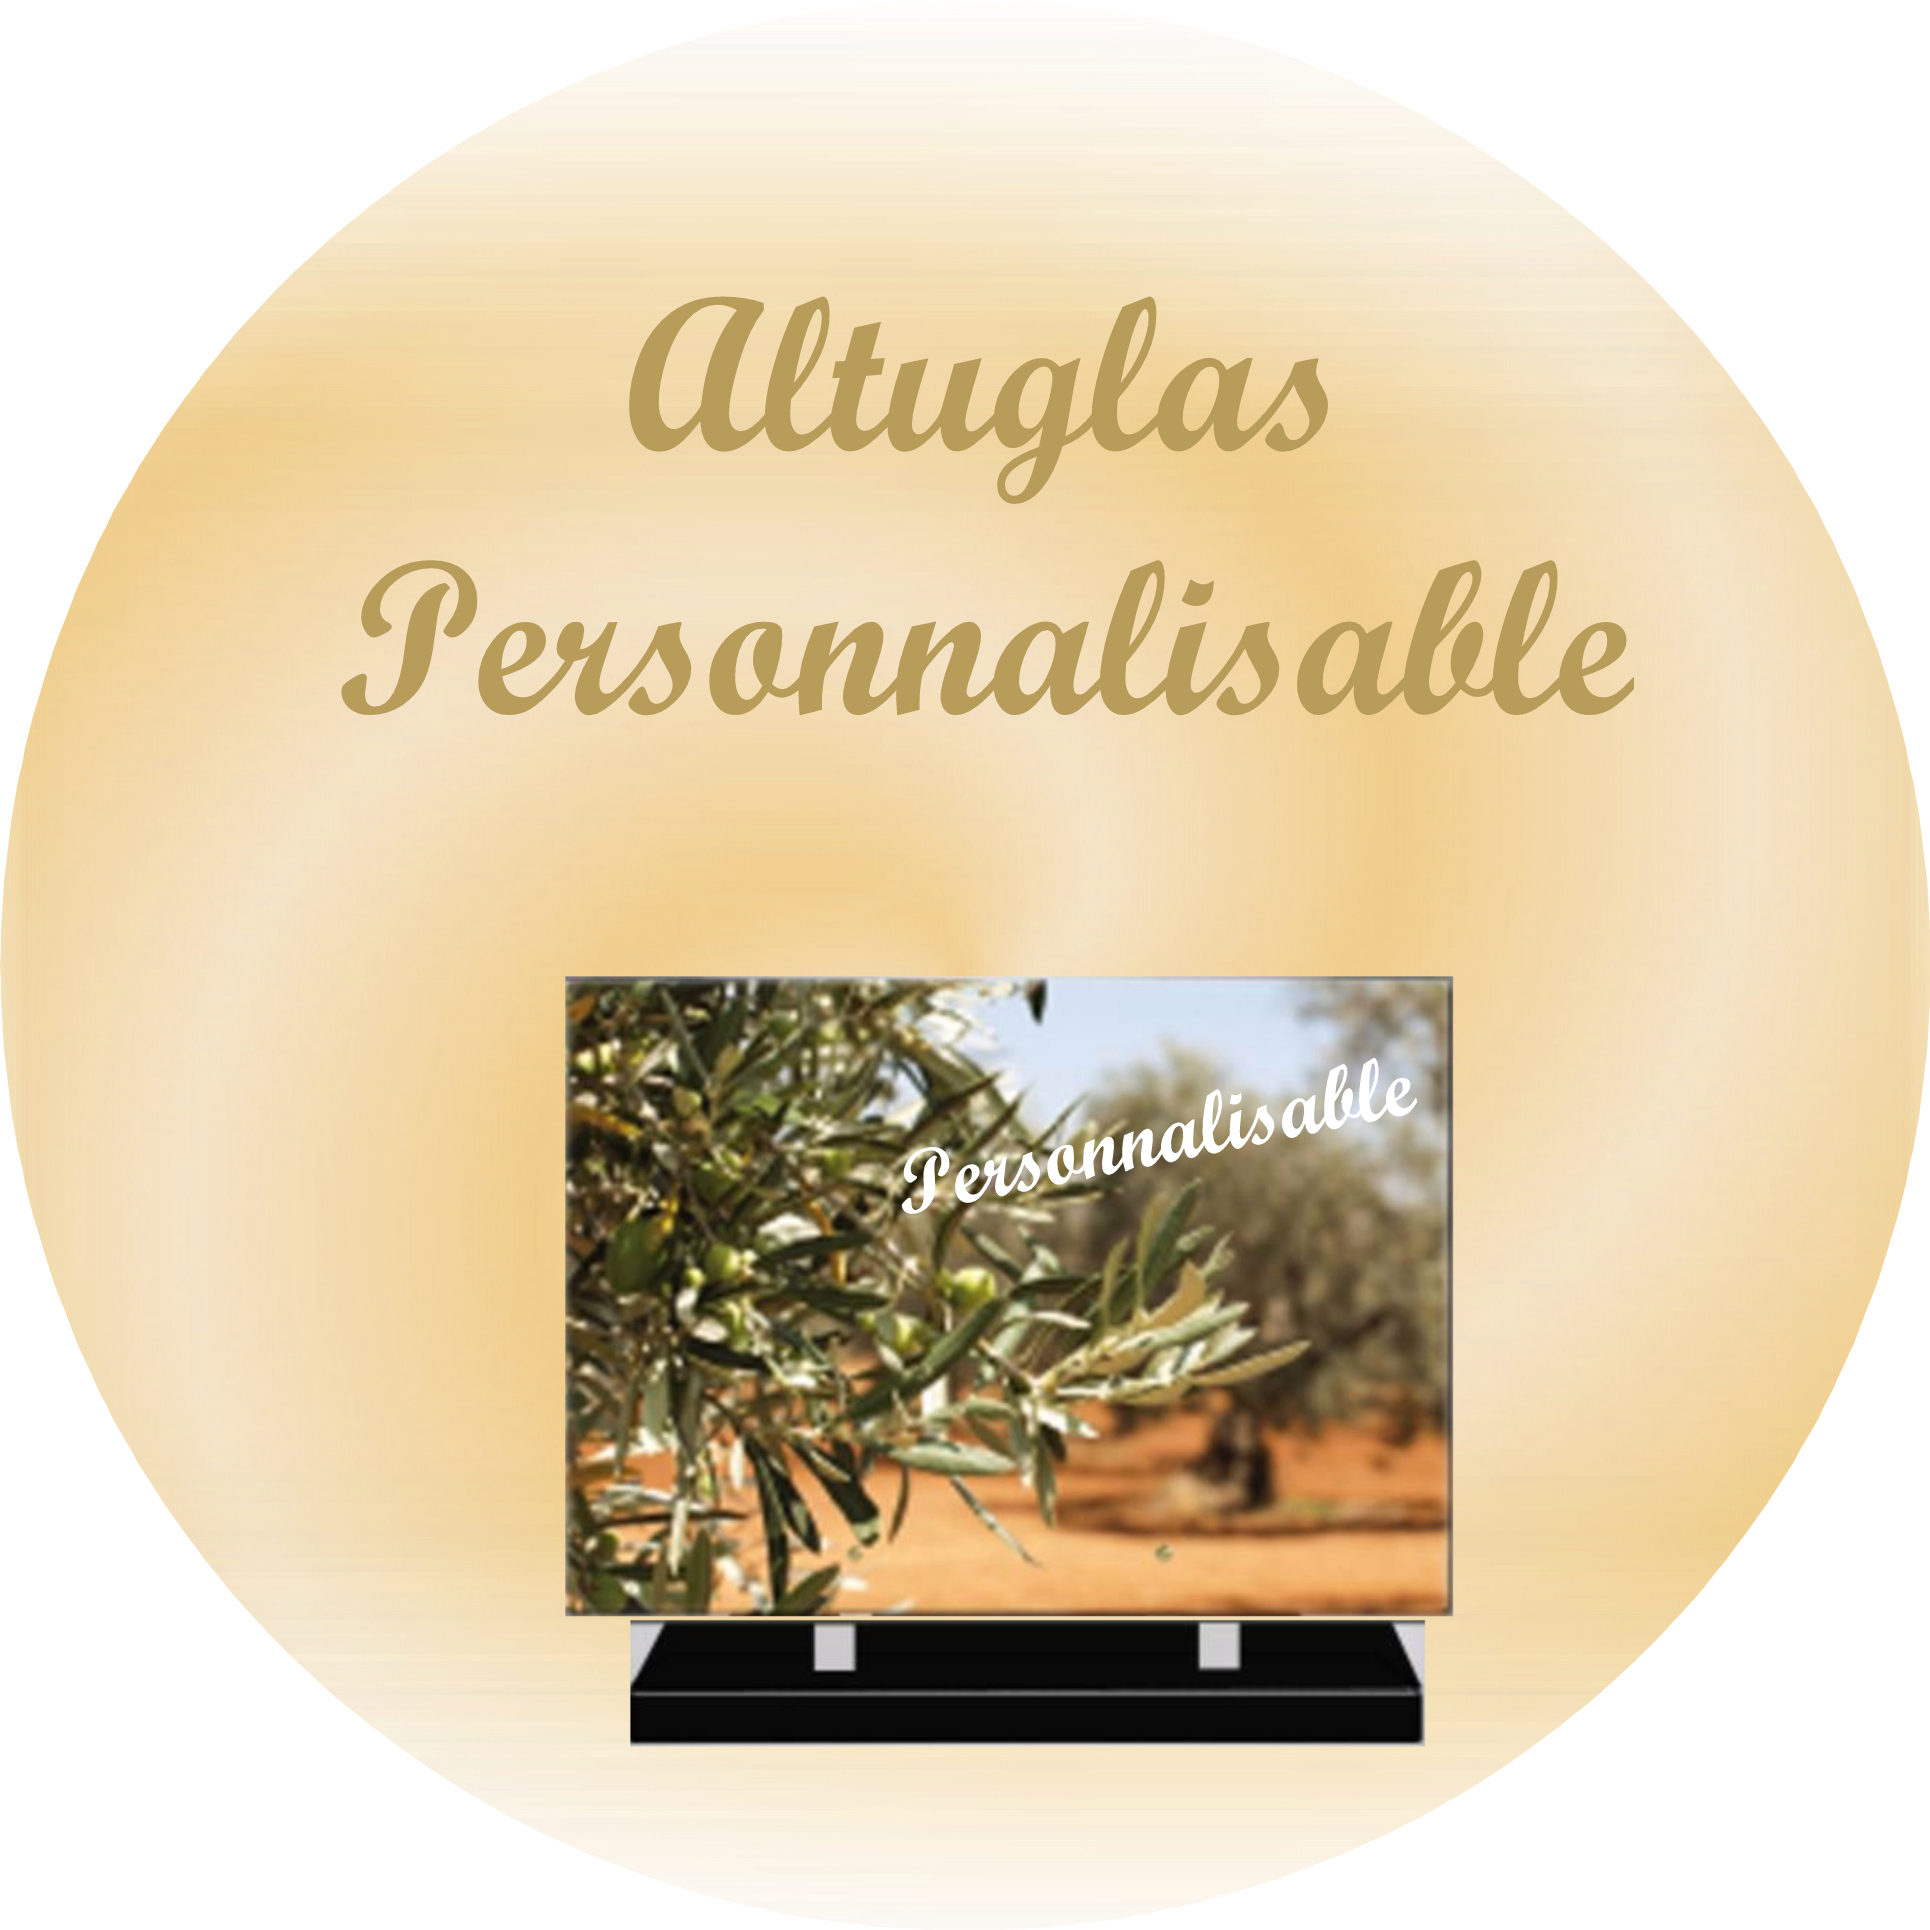 PLAQUES FUNERAIRES MODERNES PERSONNALISABLES RECTANGLE BLESSY